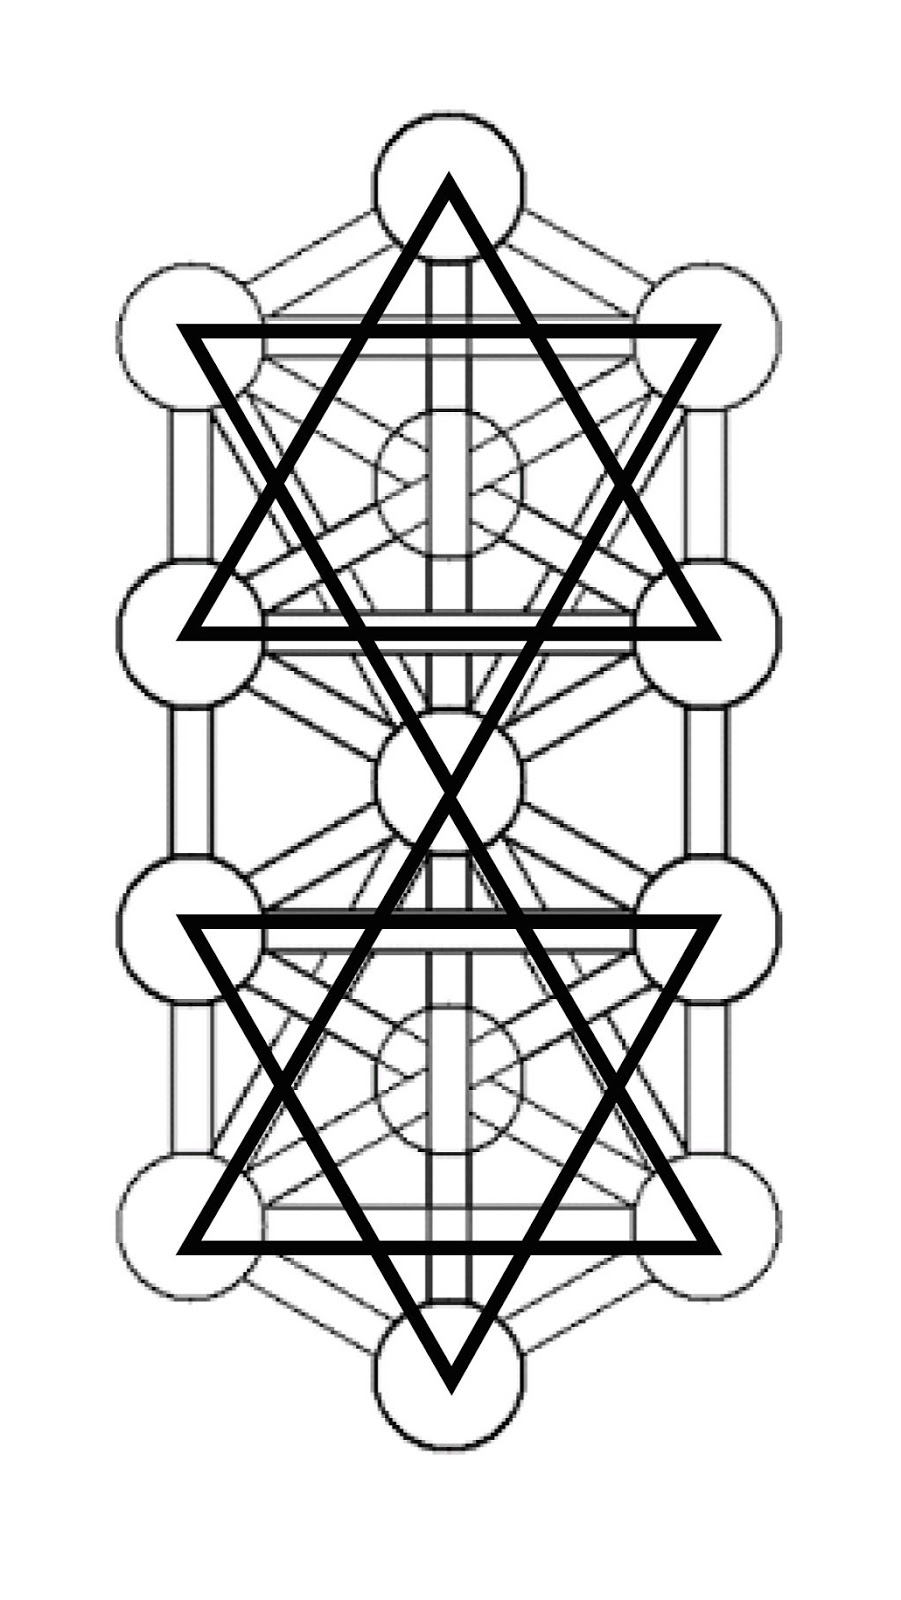 Kabbalah Tree Of Life Snake / The tree of life is a diagram used in various mystical traditions.